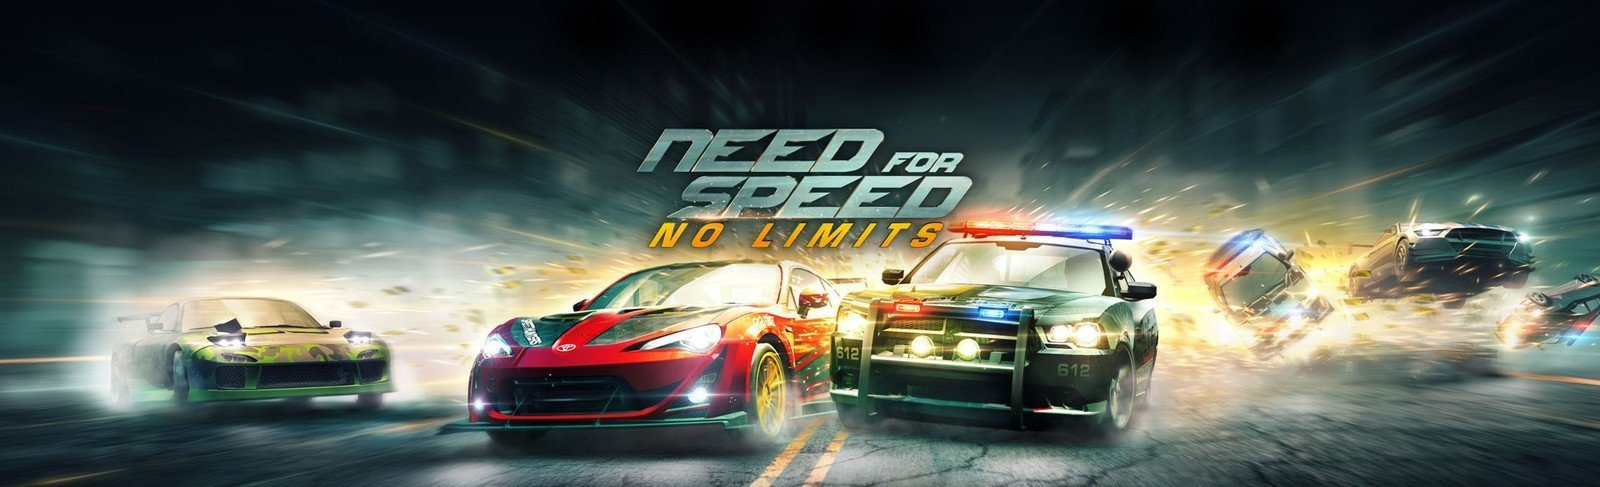 [trailer] Need For Speed No Limits bientôt sur iOS et Android